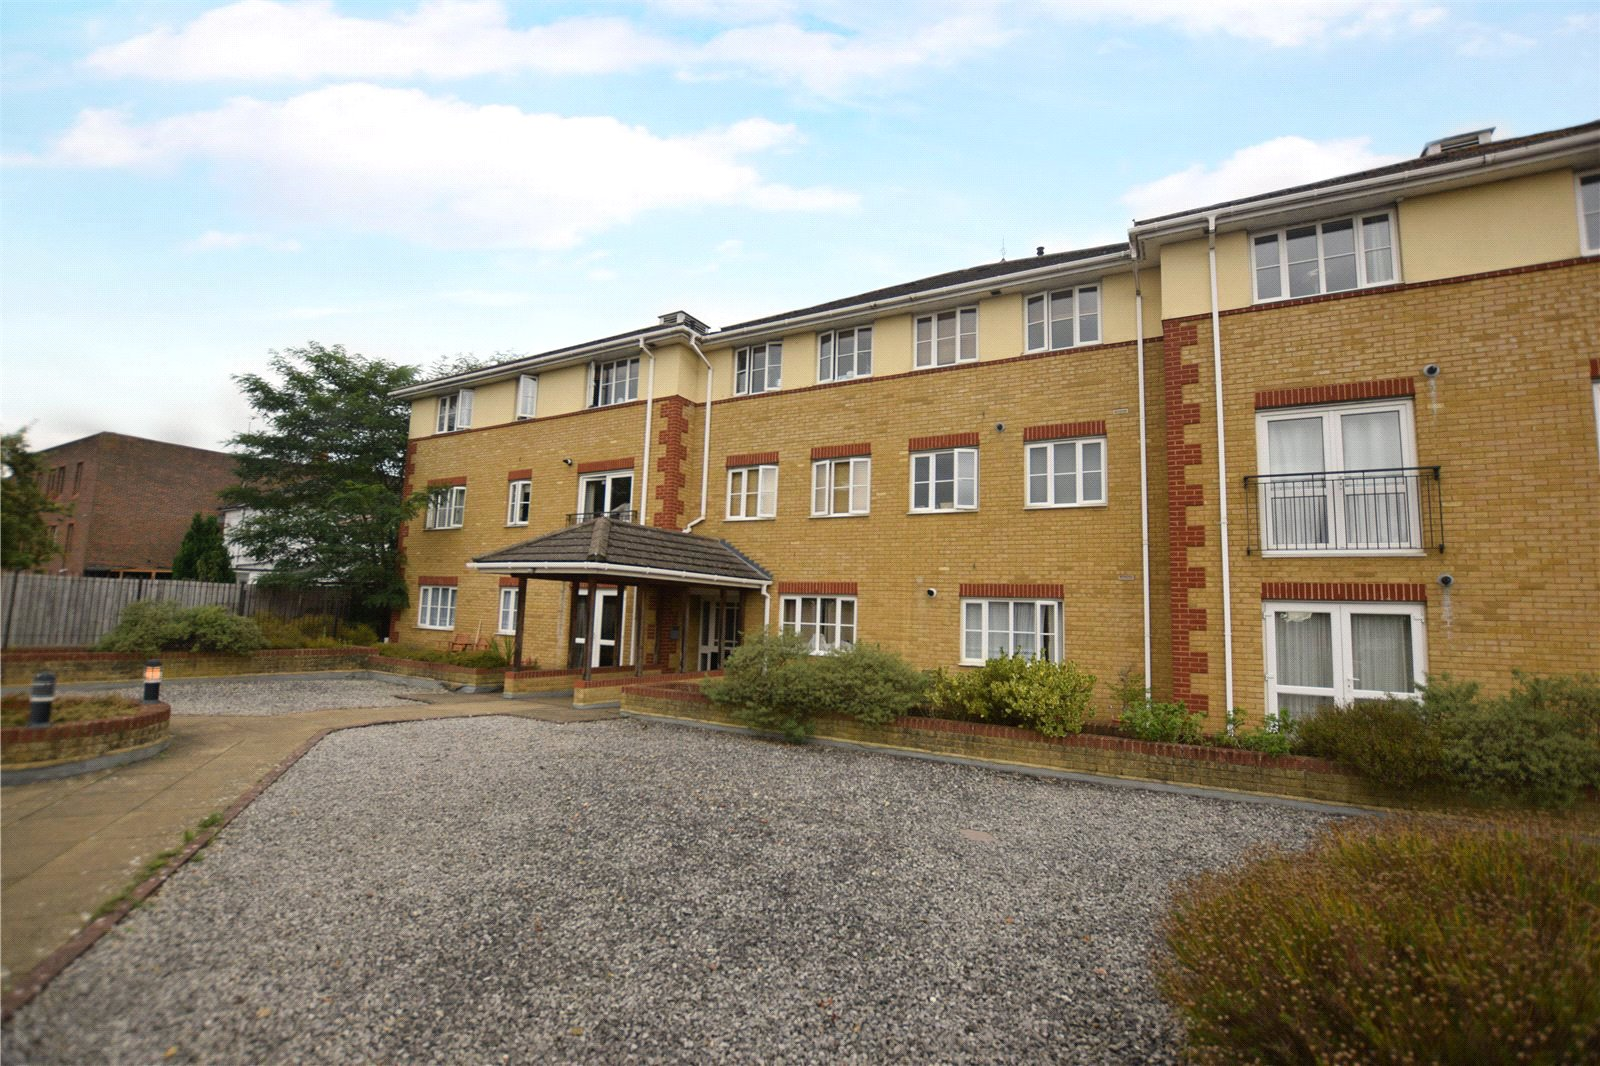 2 Bedrooms Apartment Flat for sale in St. Michaels Place, St. Michaels Road, Camberley, Surrey, GU15